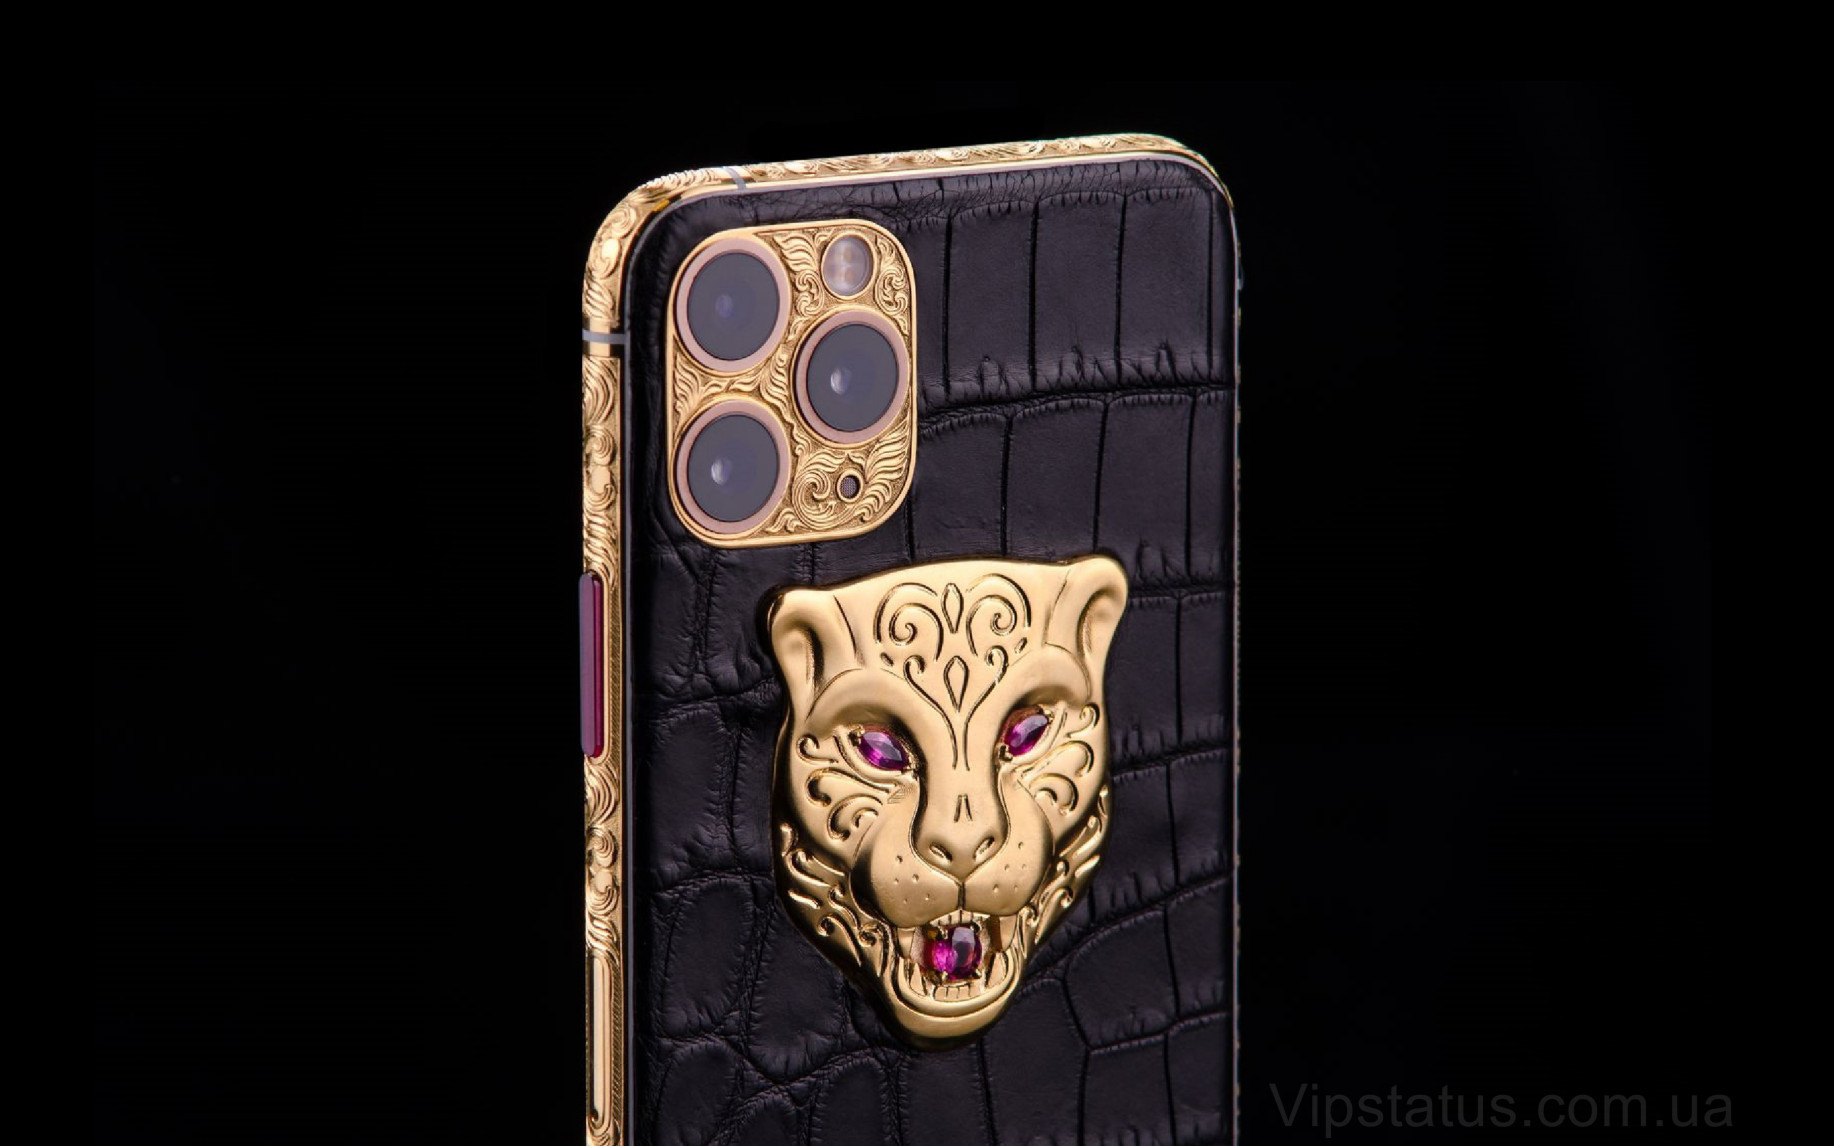 Elite Gucci Tiger IPHONE 11 PRO MAX 512 GB Gucci Tiger IPHONE 11 PRO MAX 512 GB image 2